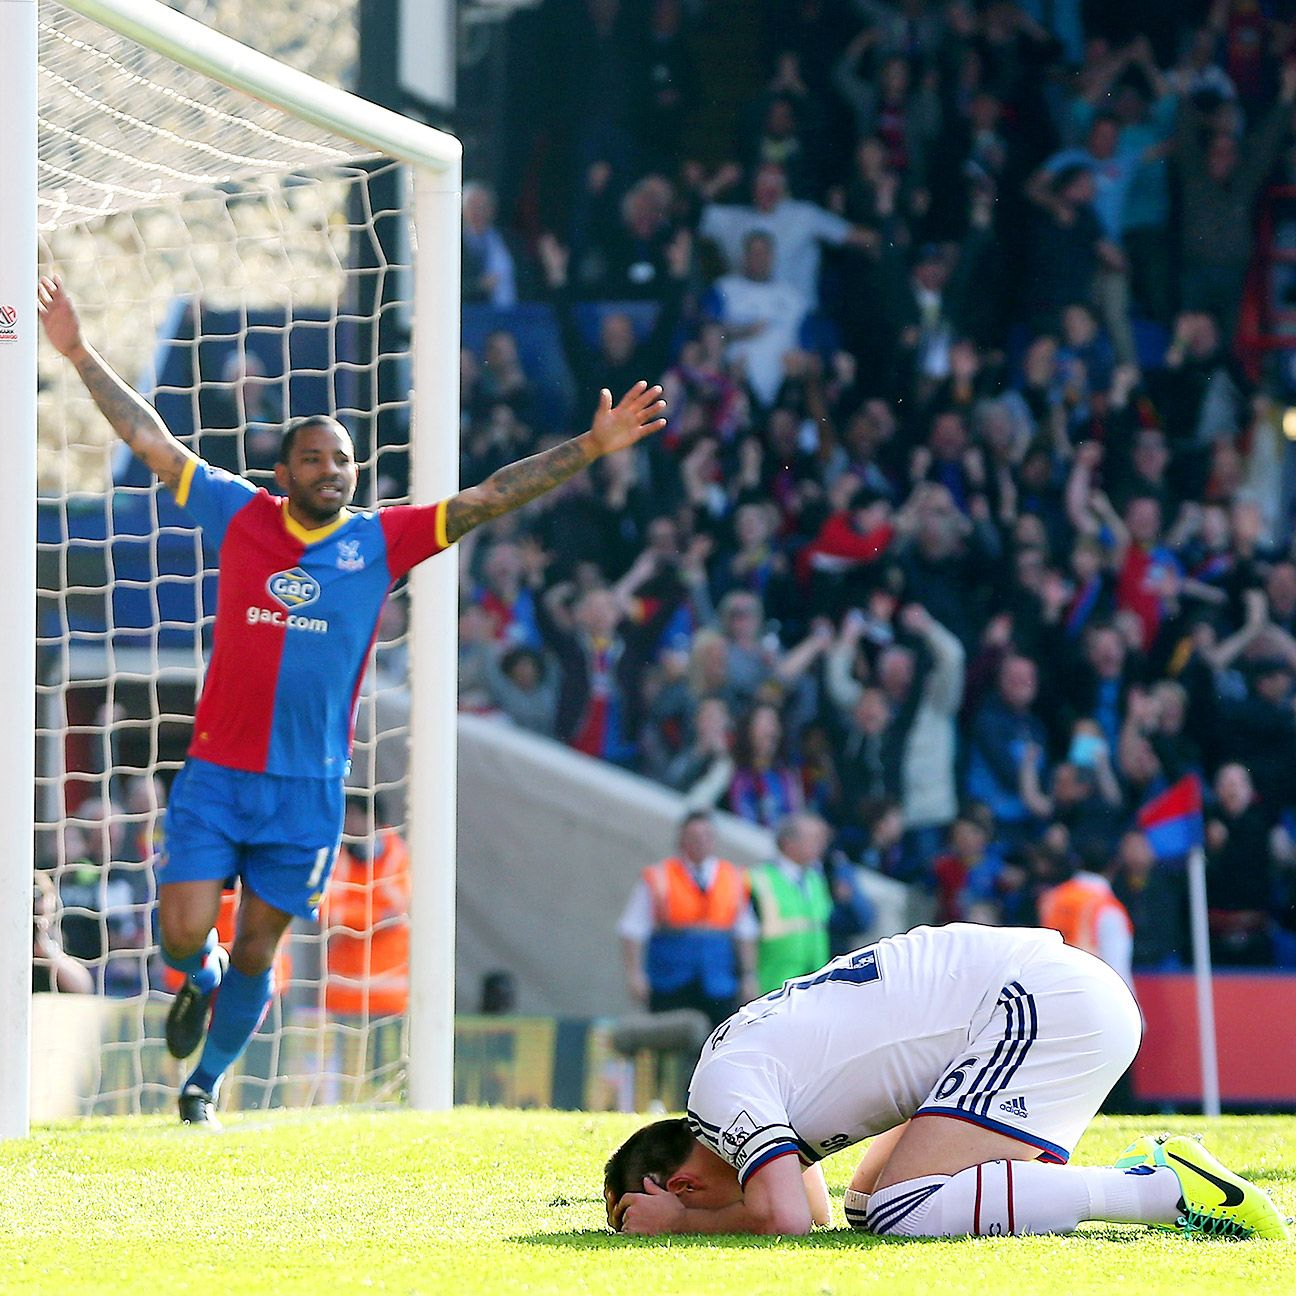 Chelsea's title hopes last season took a hit when John Terry's own goal proved decisive in the Blues' defeat at Crystal Palace.